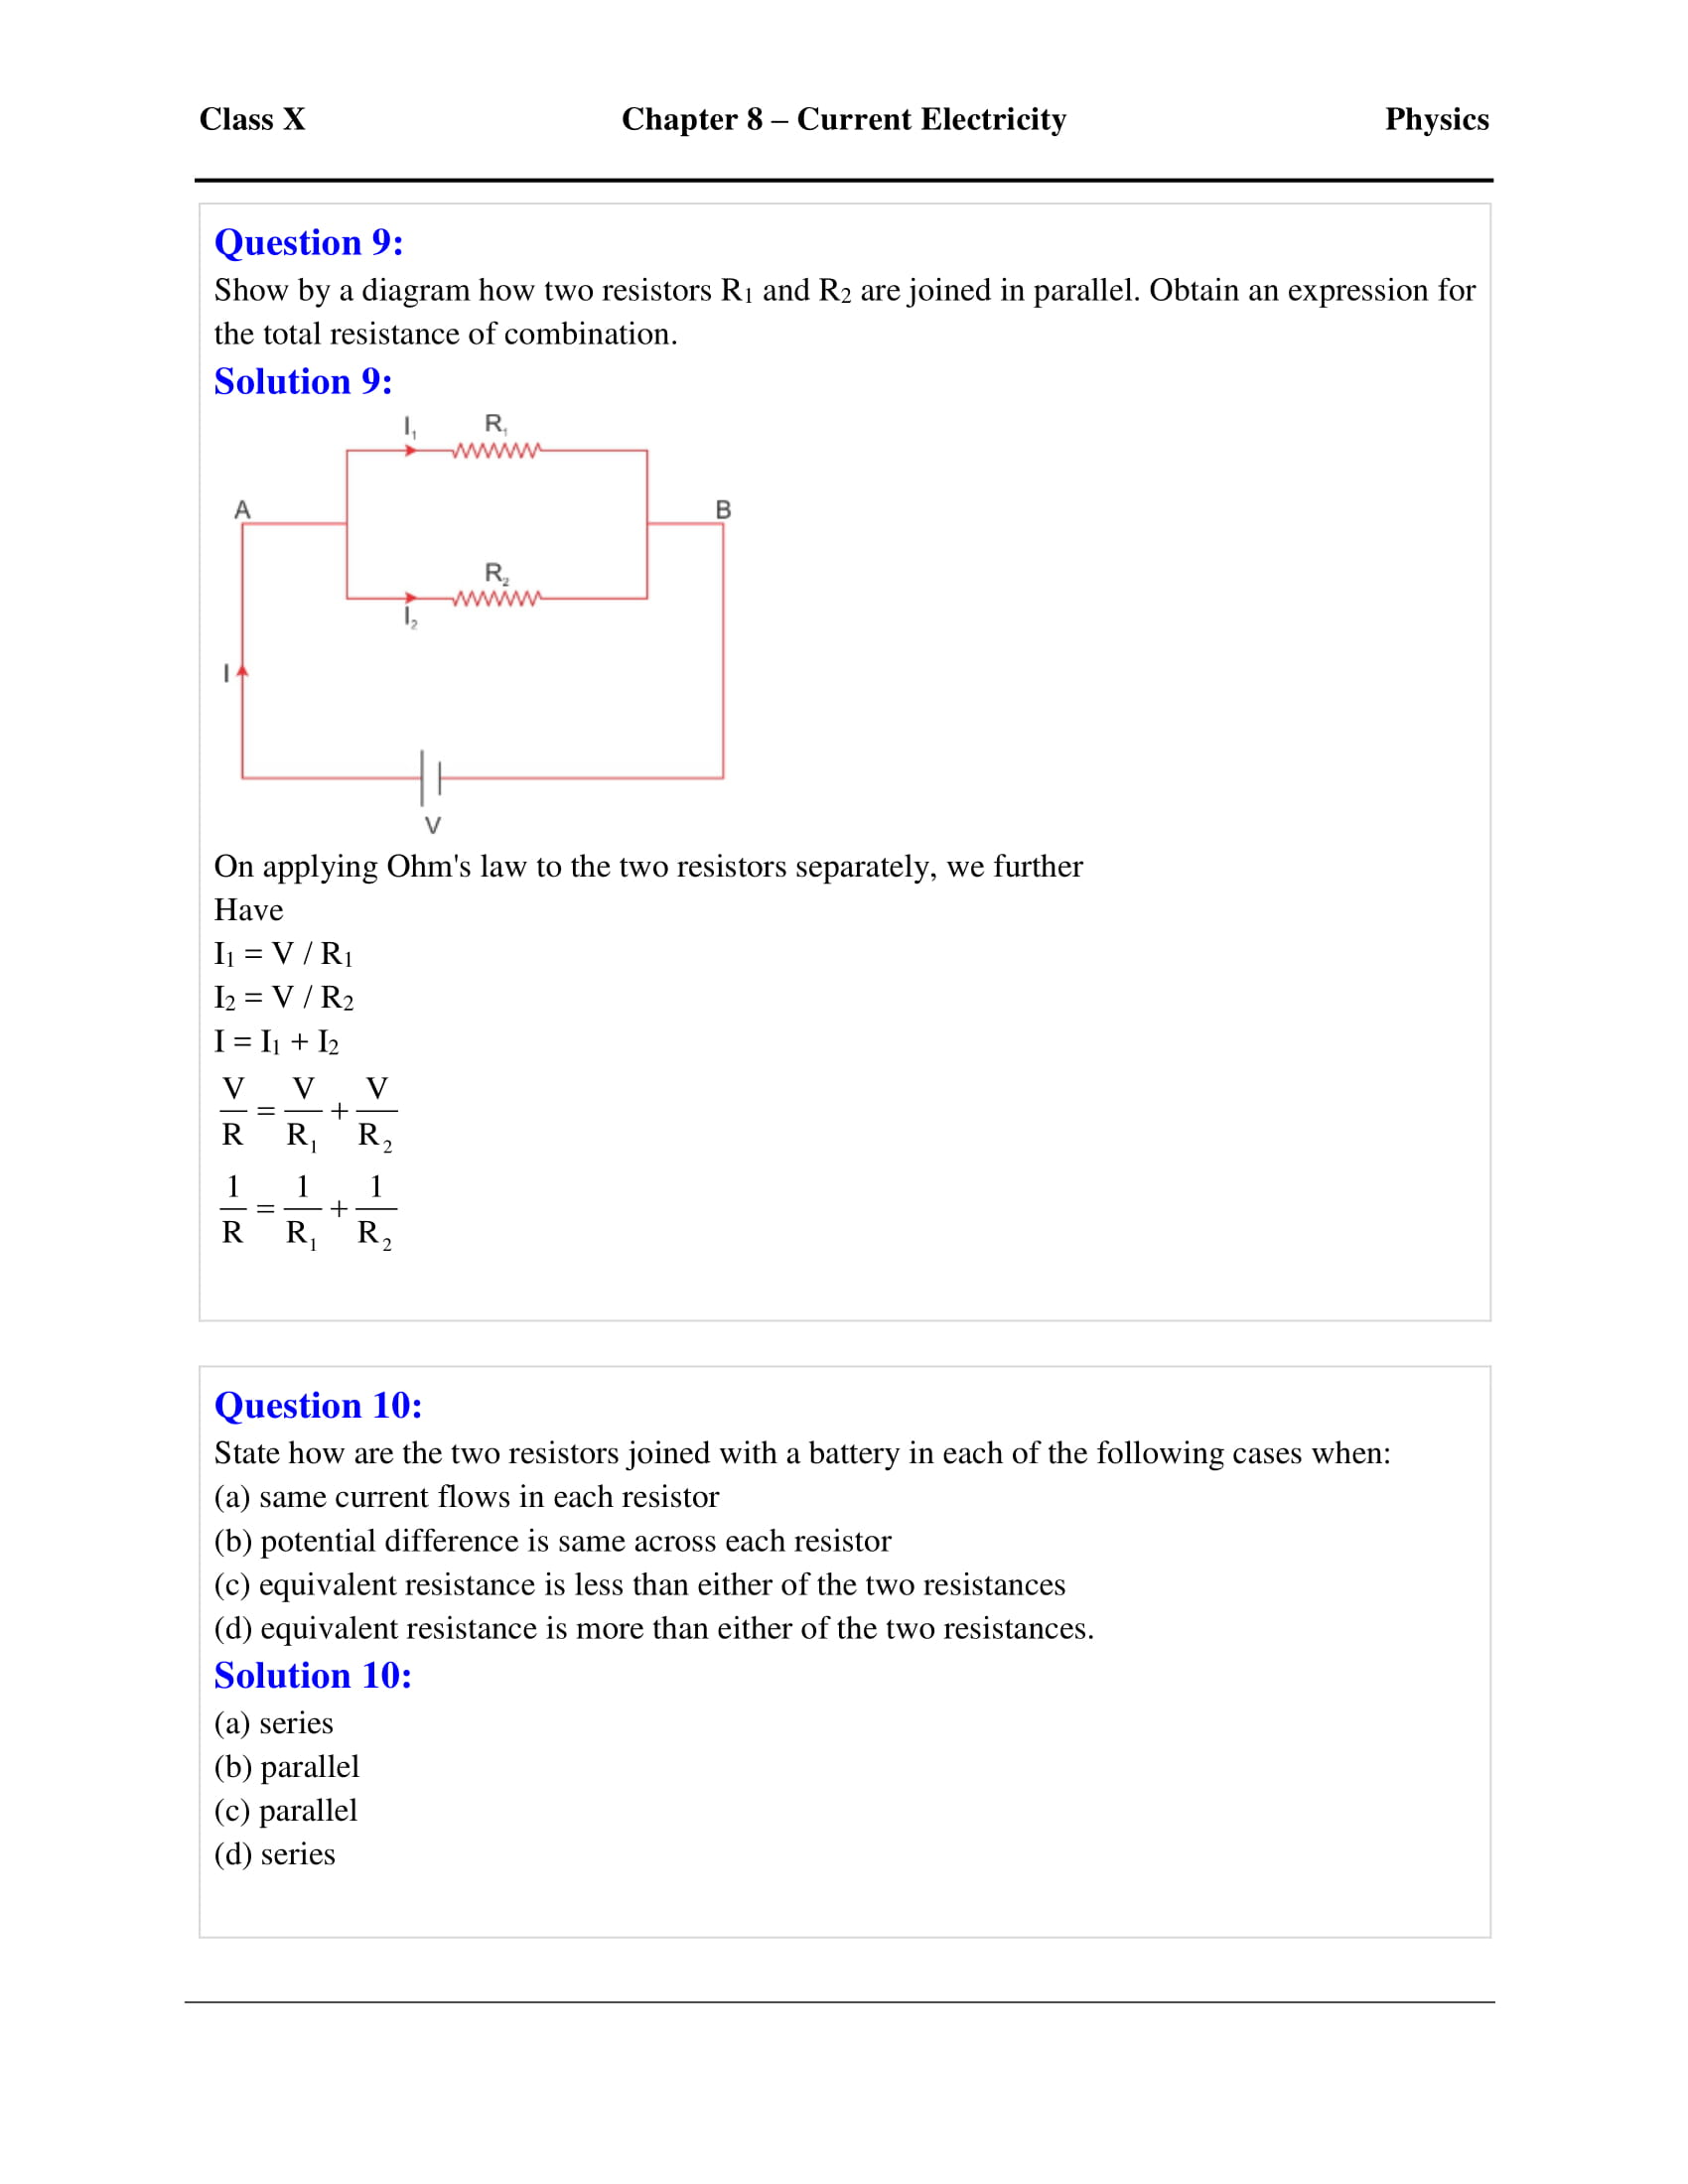 icse-selina-physics-solutions-class-10-chapter-8-current-electricity-20